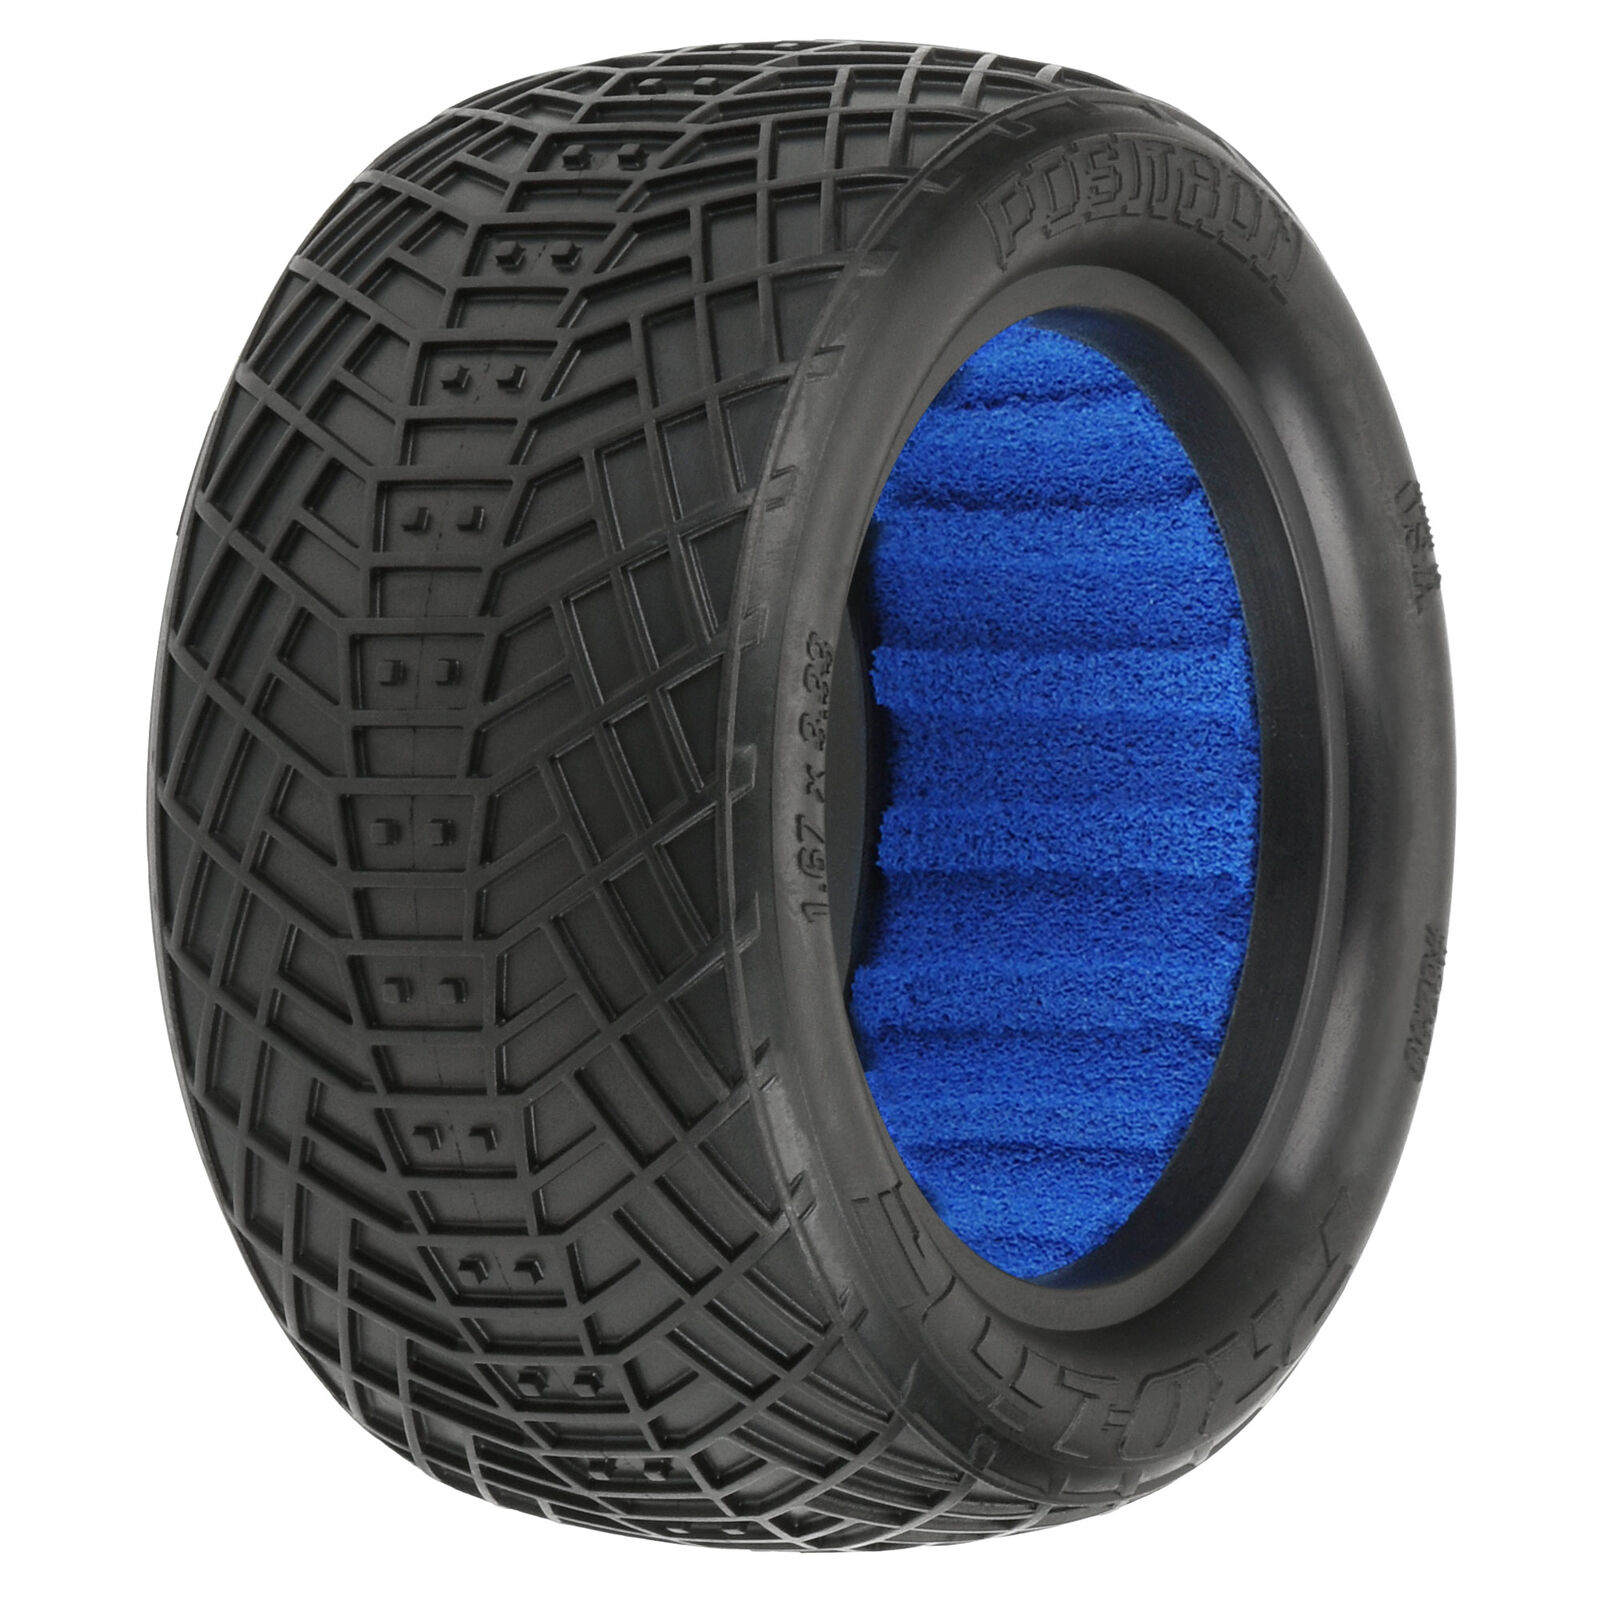 """1/10 Positron S3 Rear 2.2"""" Off-Road Buggy Tires (2)"""